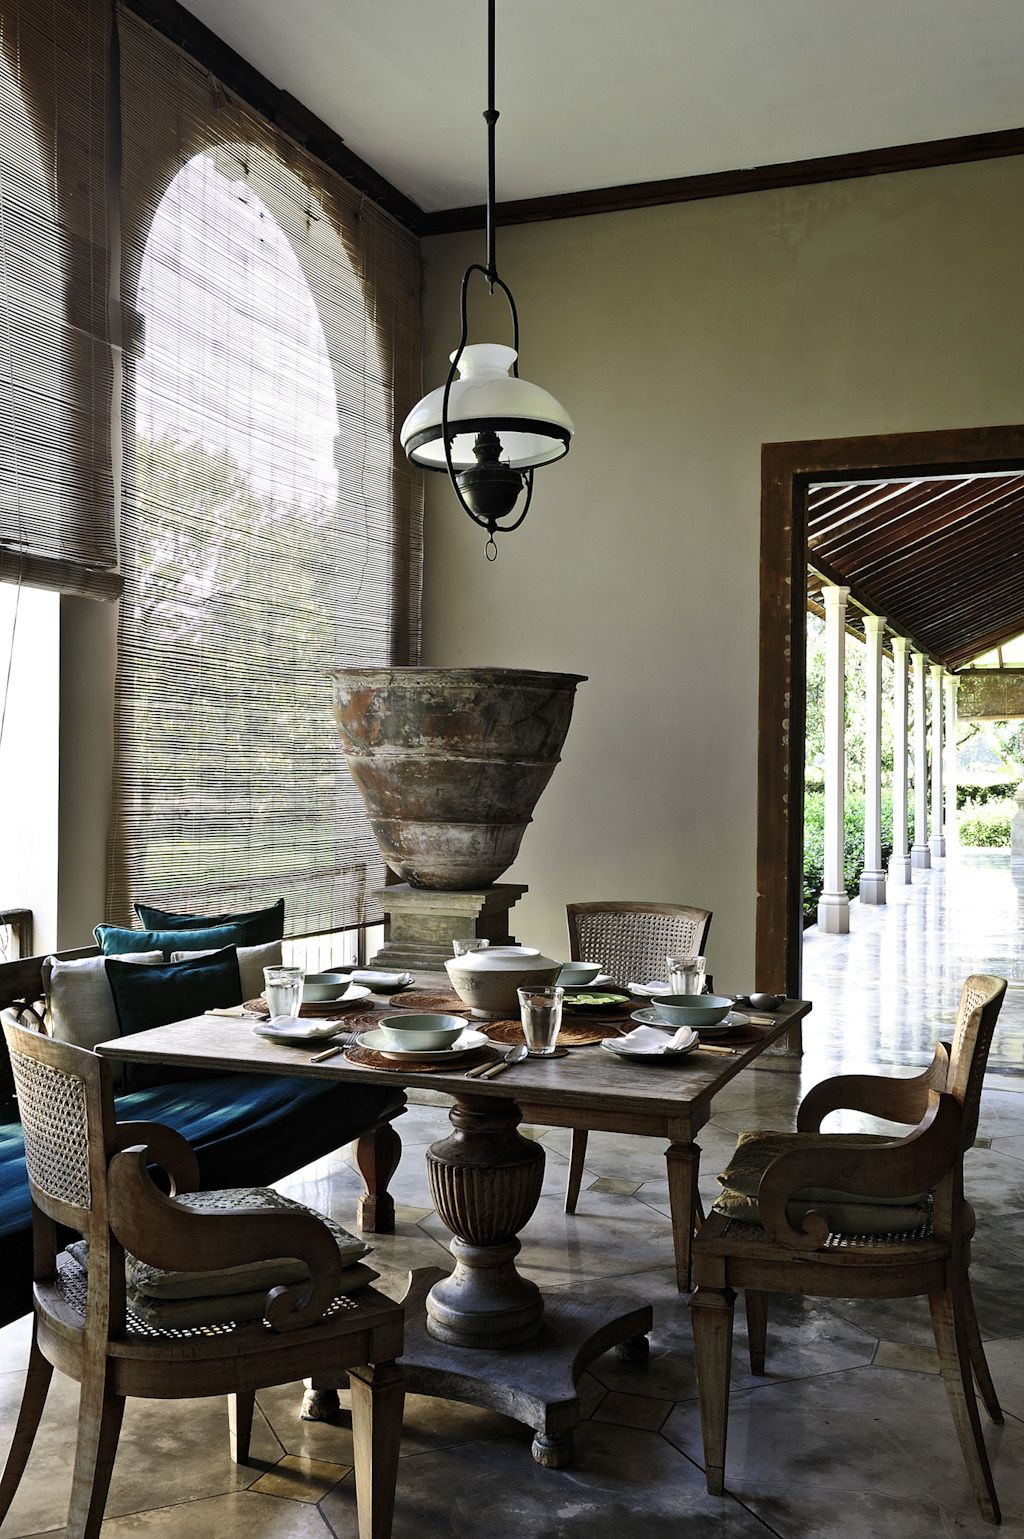 House design indonesian style - Indonesian Furniture Designs To Inspire You